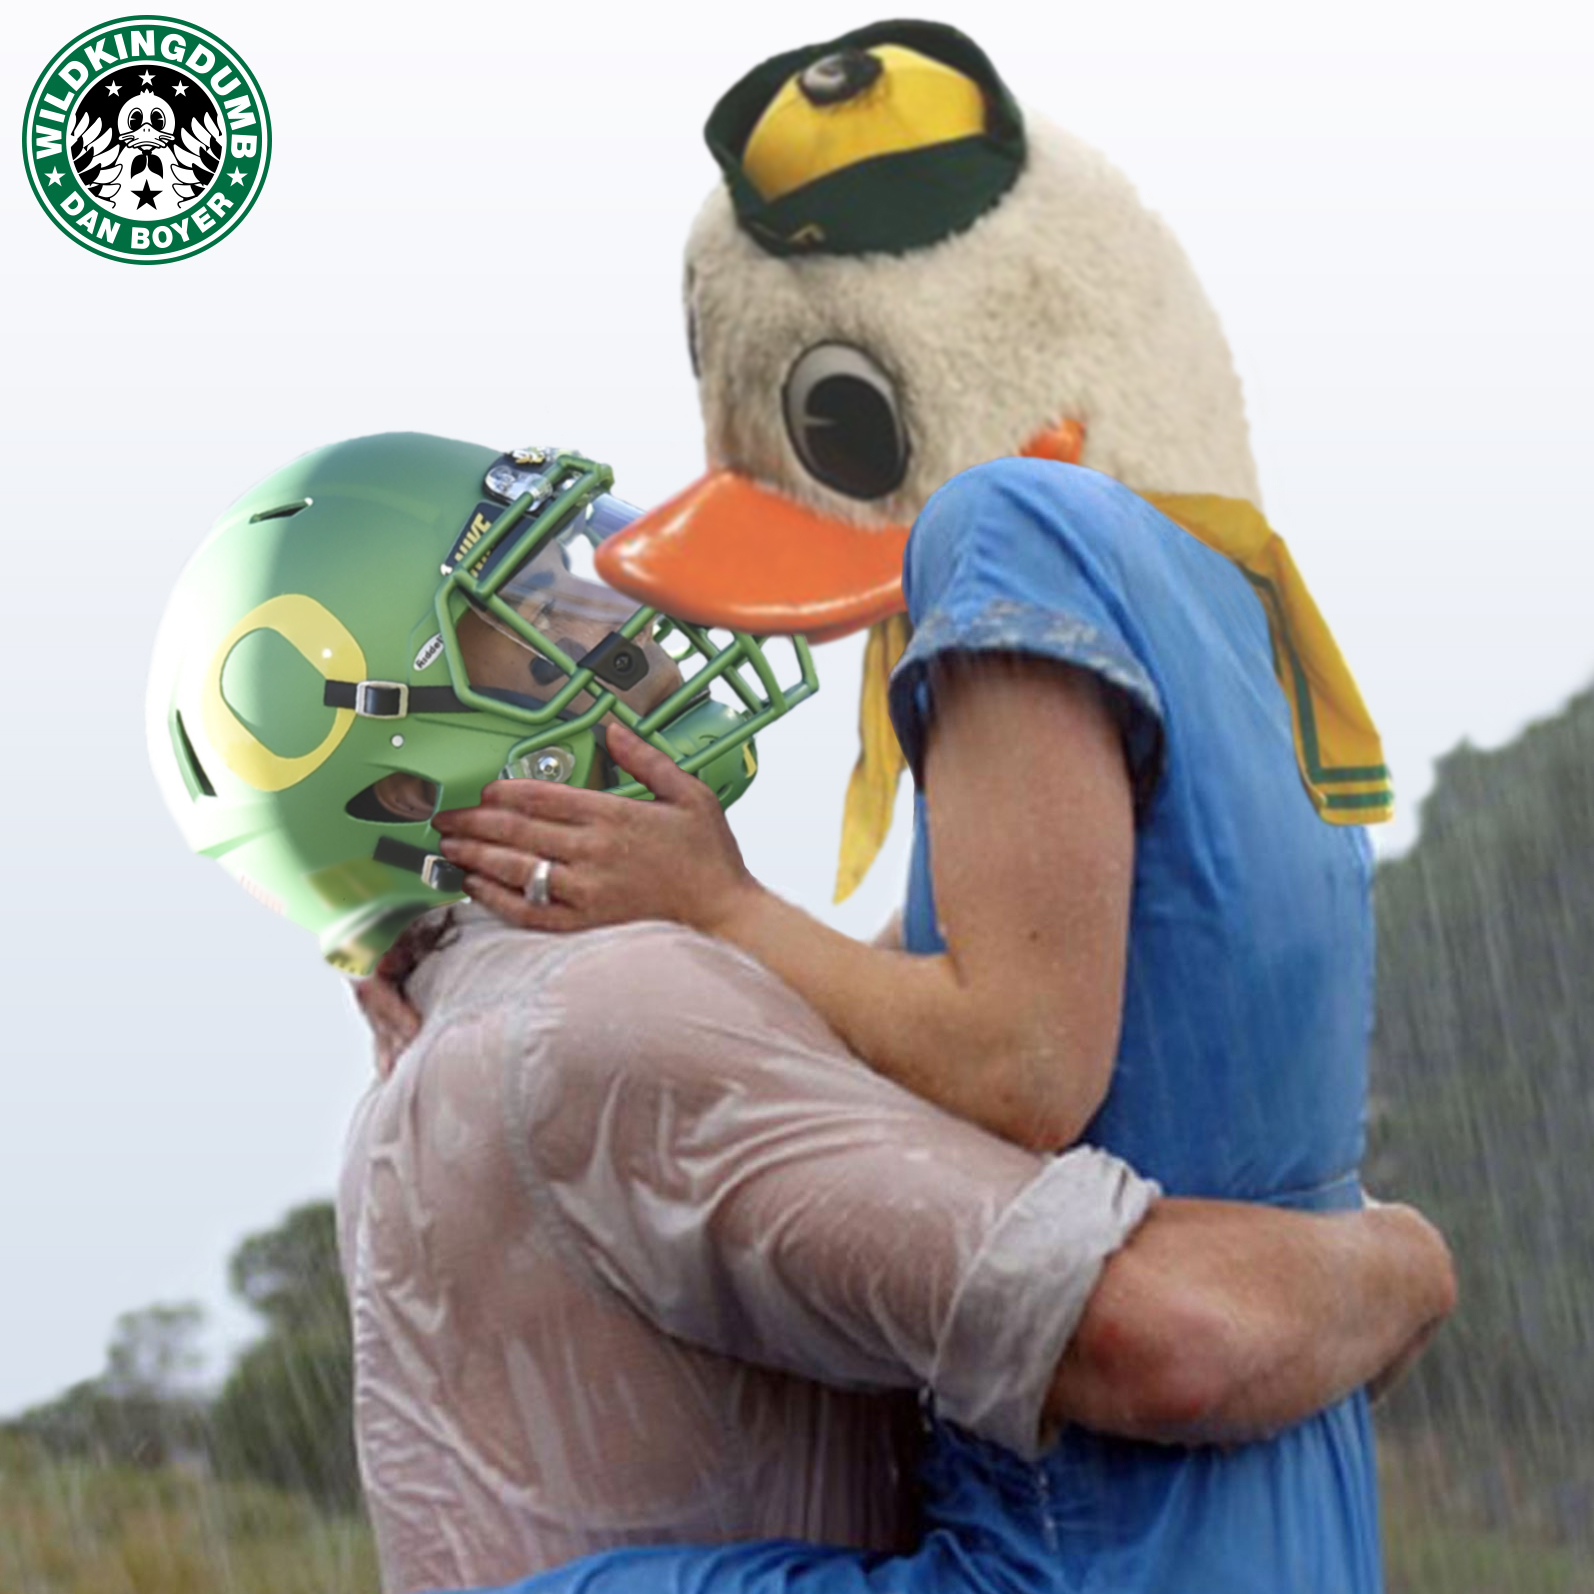 how ducks fans feel when they see titans fans falling in love with marcus mariota